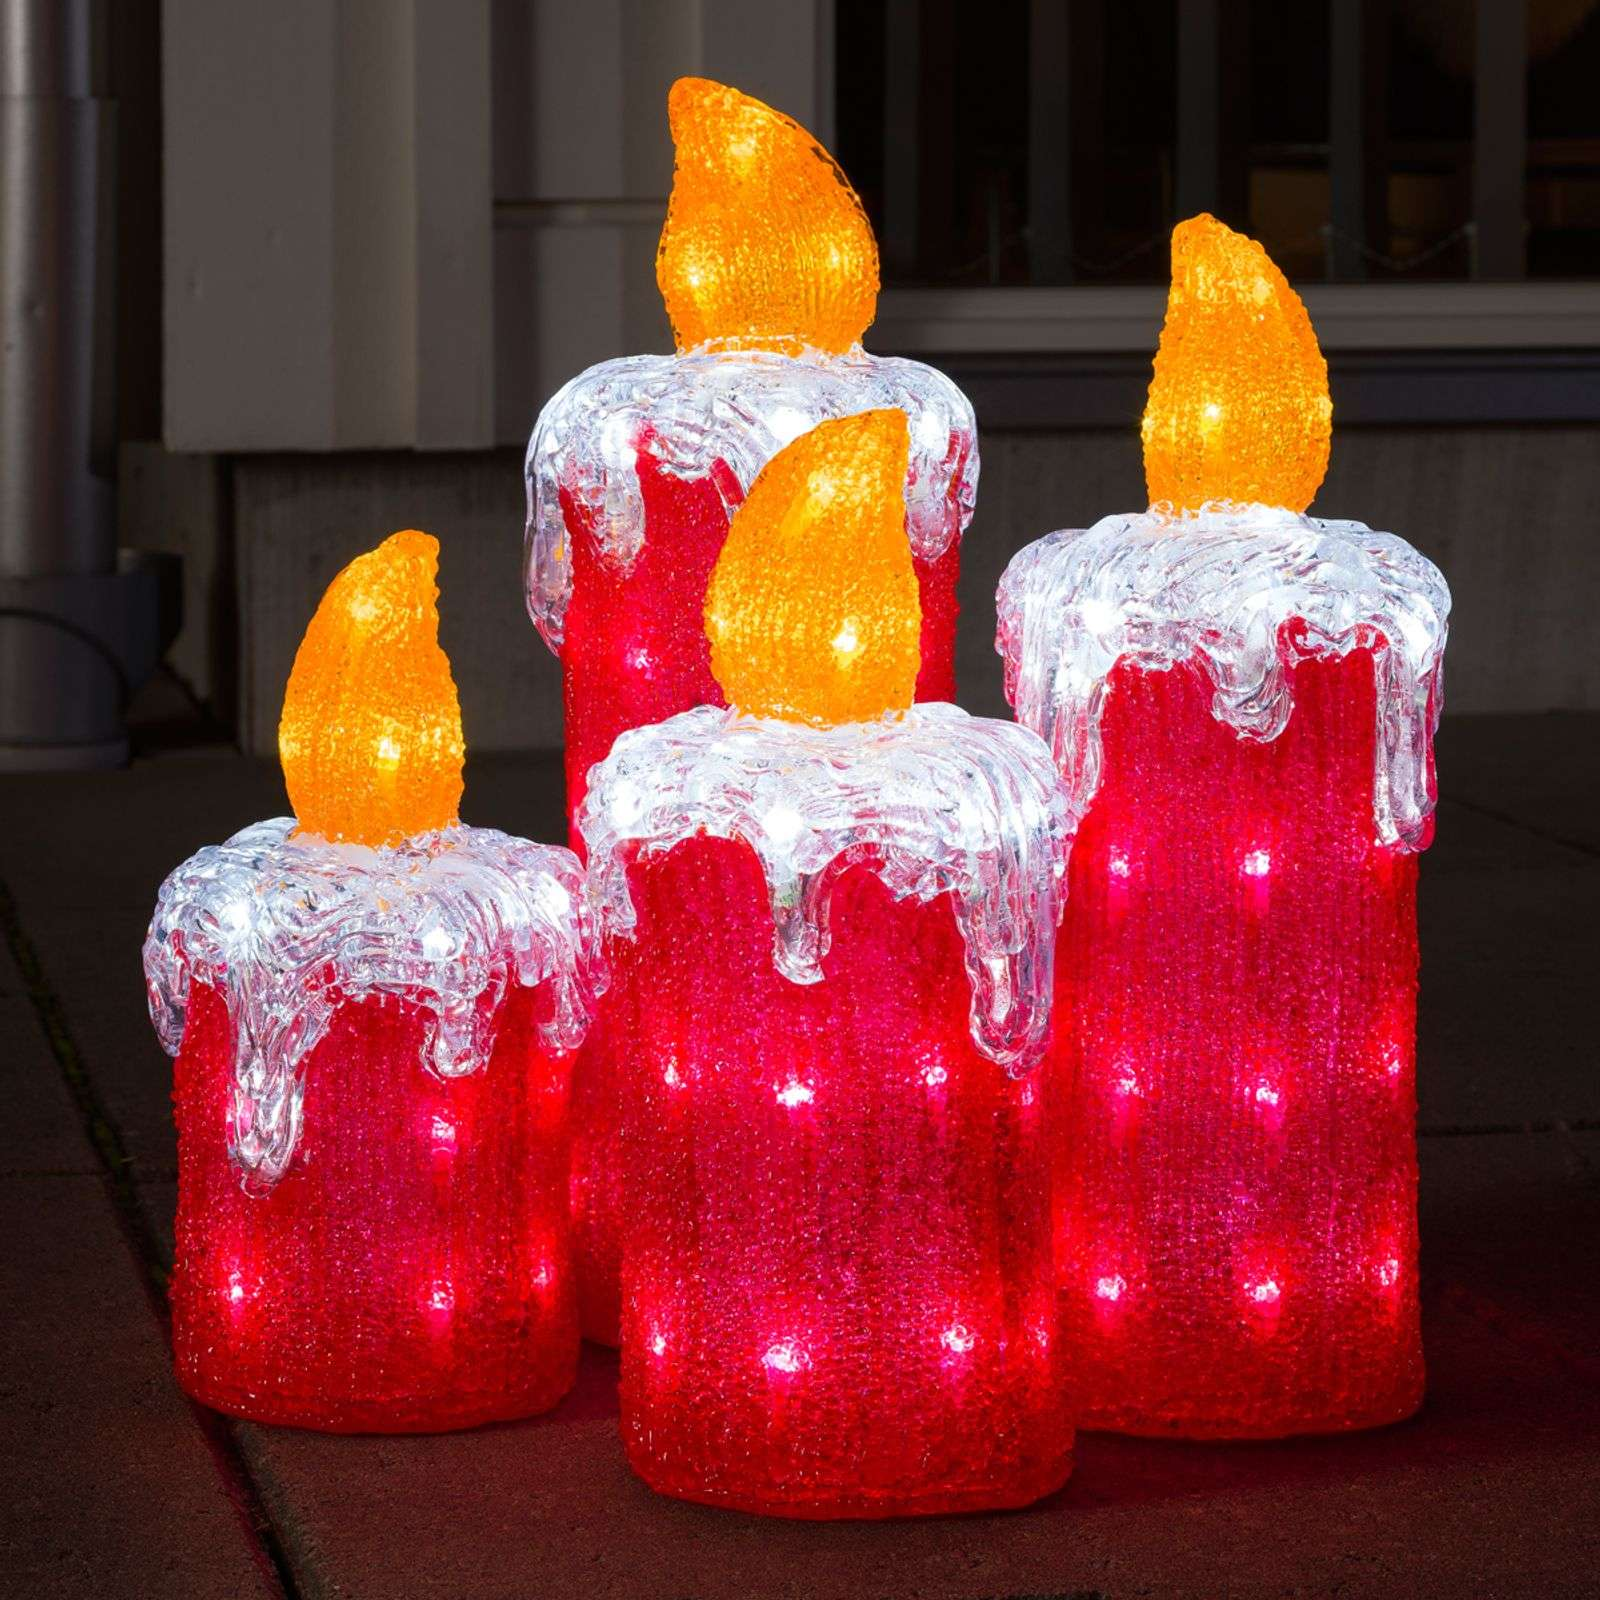 Set de 4 velas de Adviento, decoración exterior